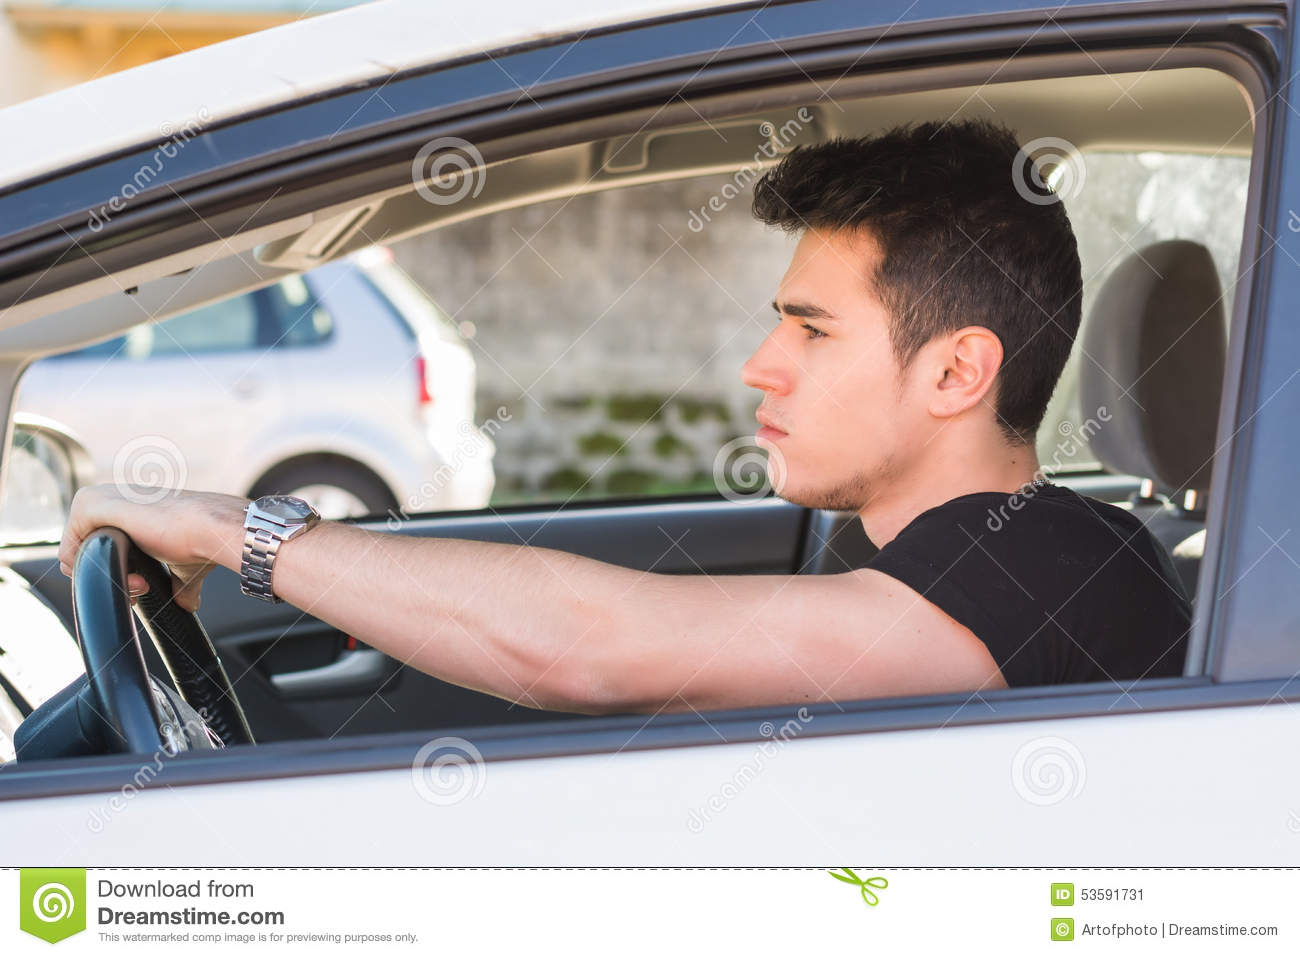 Front View Of A Person Driving A Car